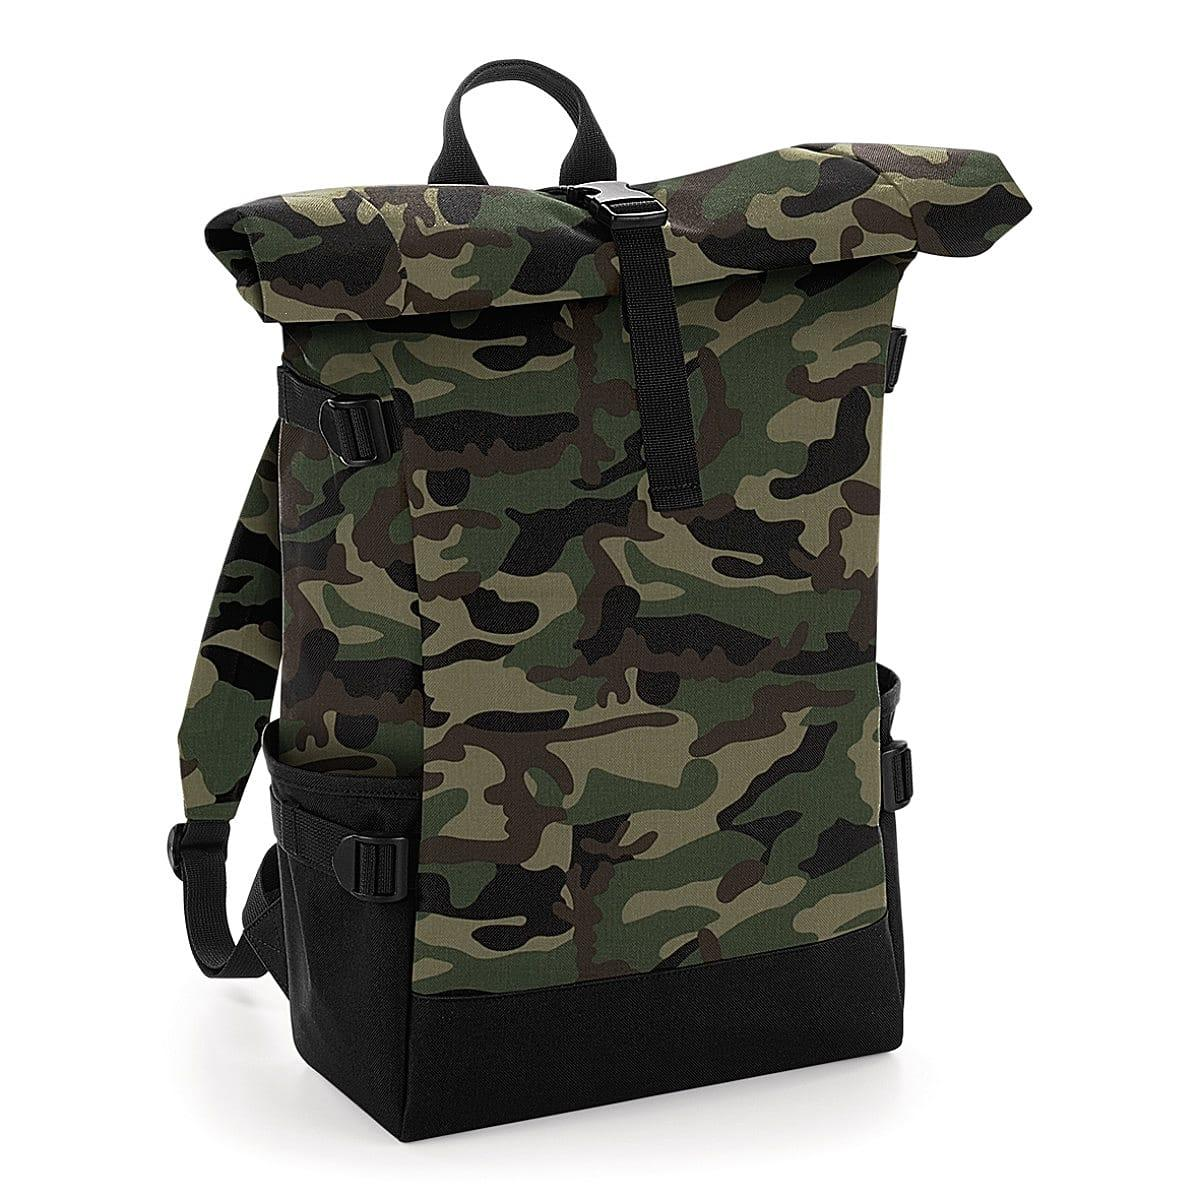 Bagbase Block Roll-Top Backpack in Jungle Camo / Black (Product Code: BG858)